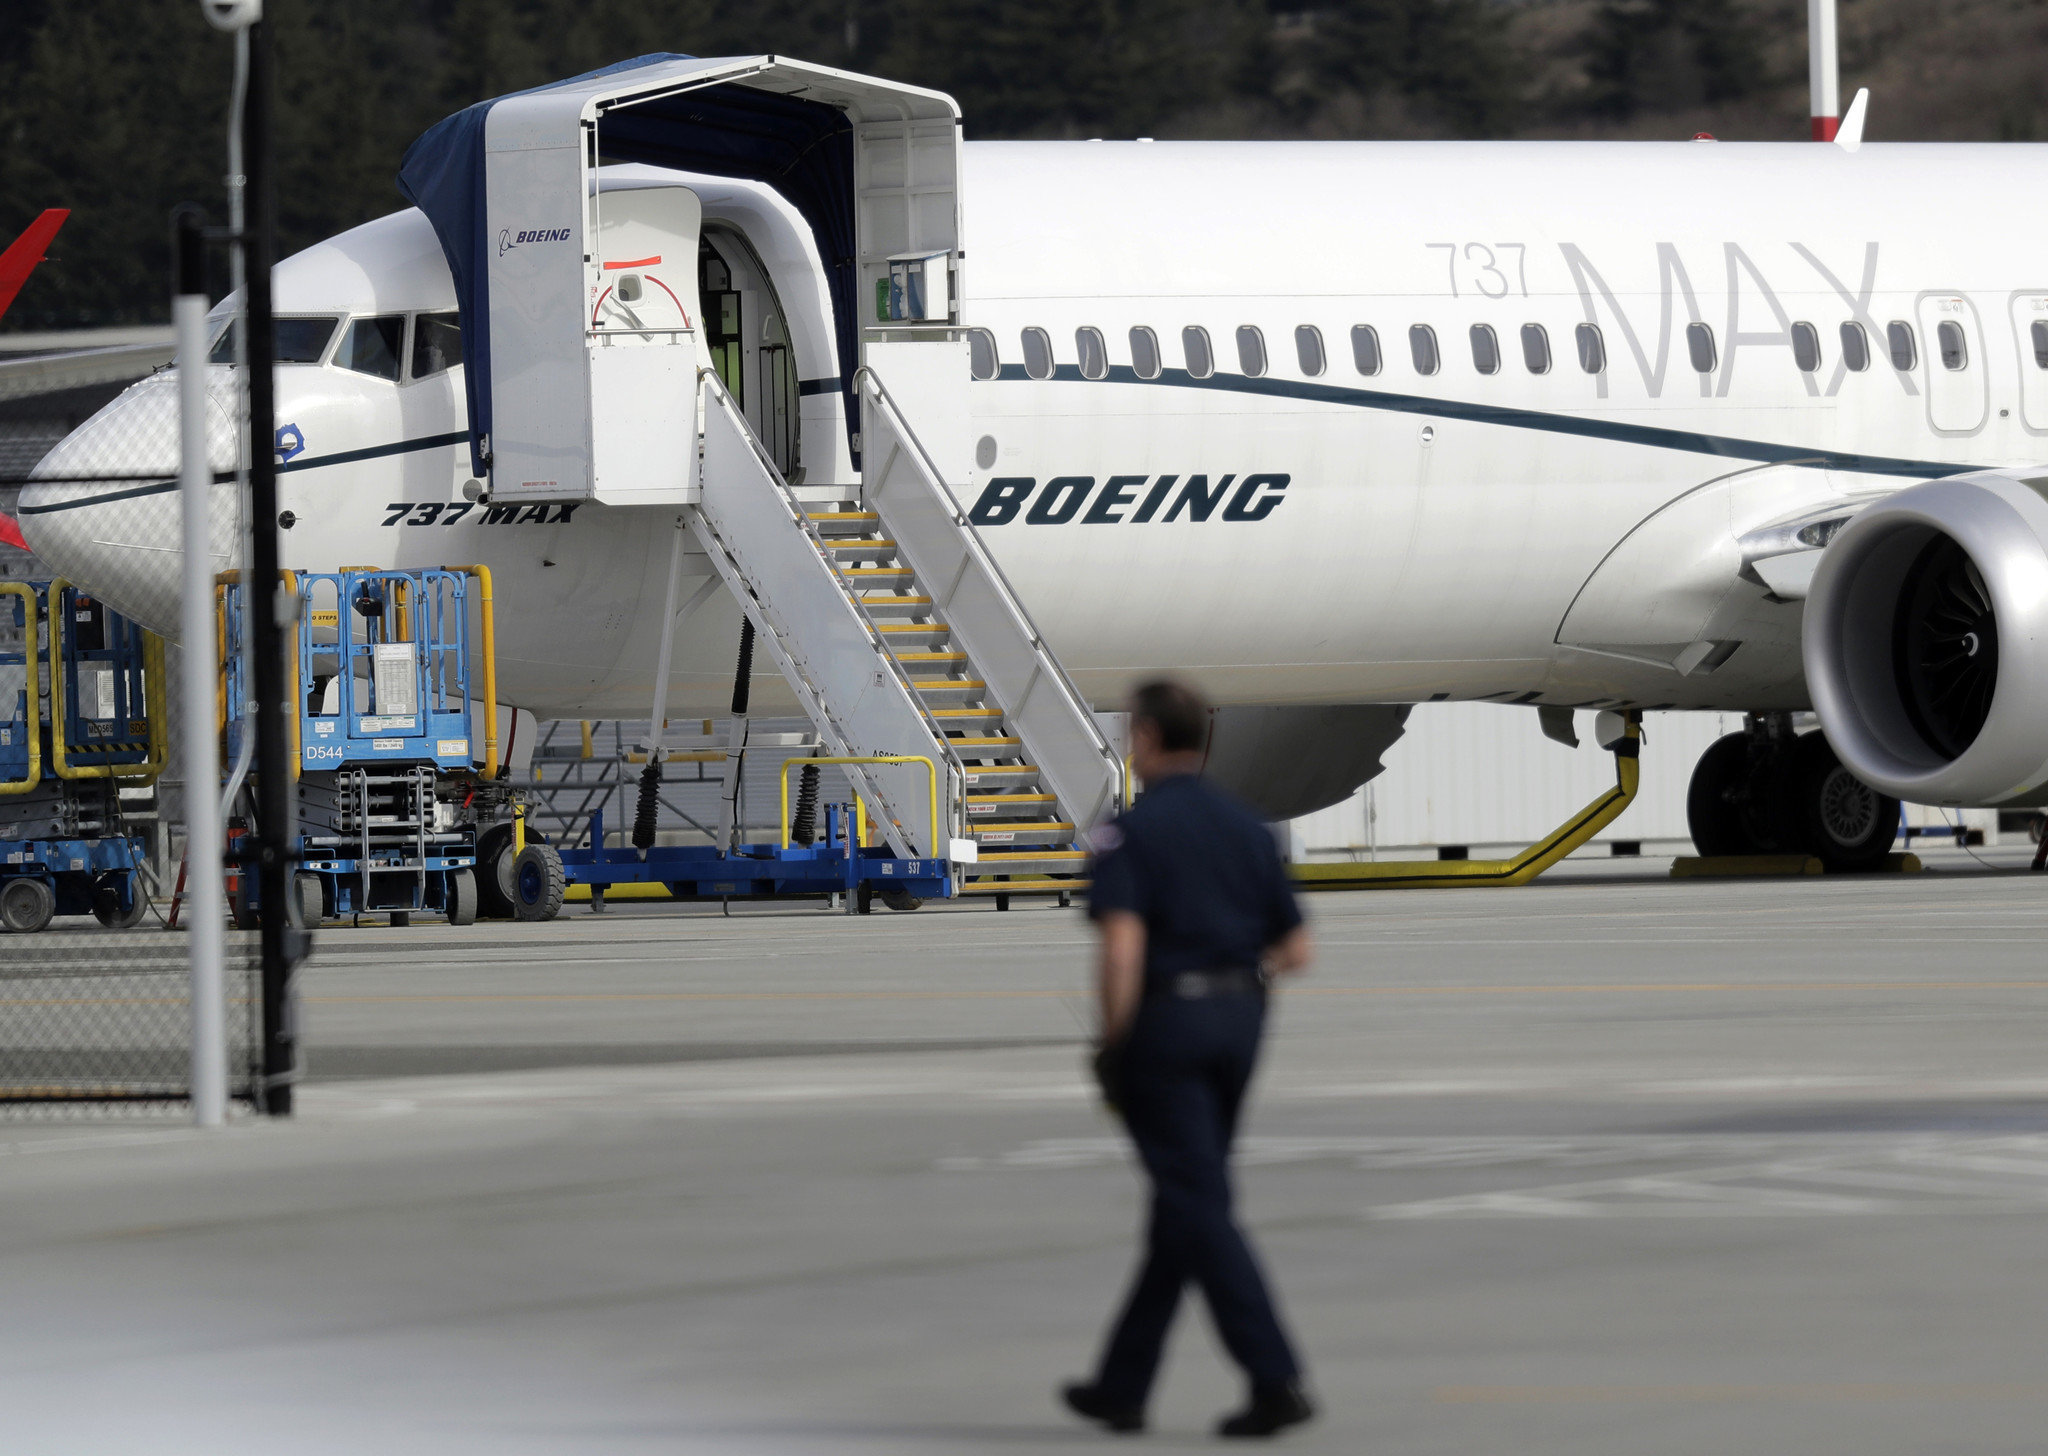 Boeing and FAA near completion of 737 Max 8 flight control system overhaul